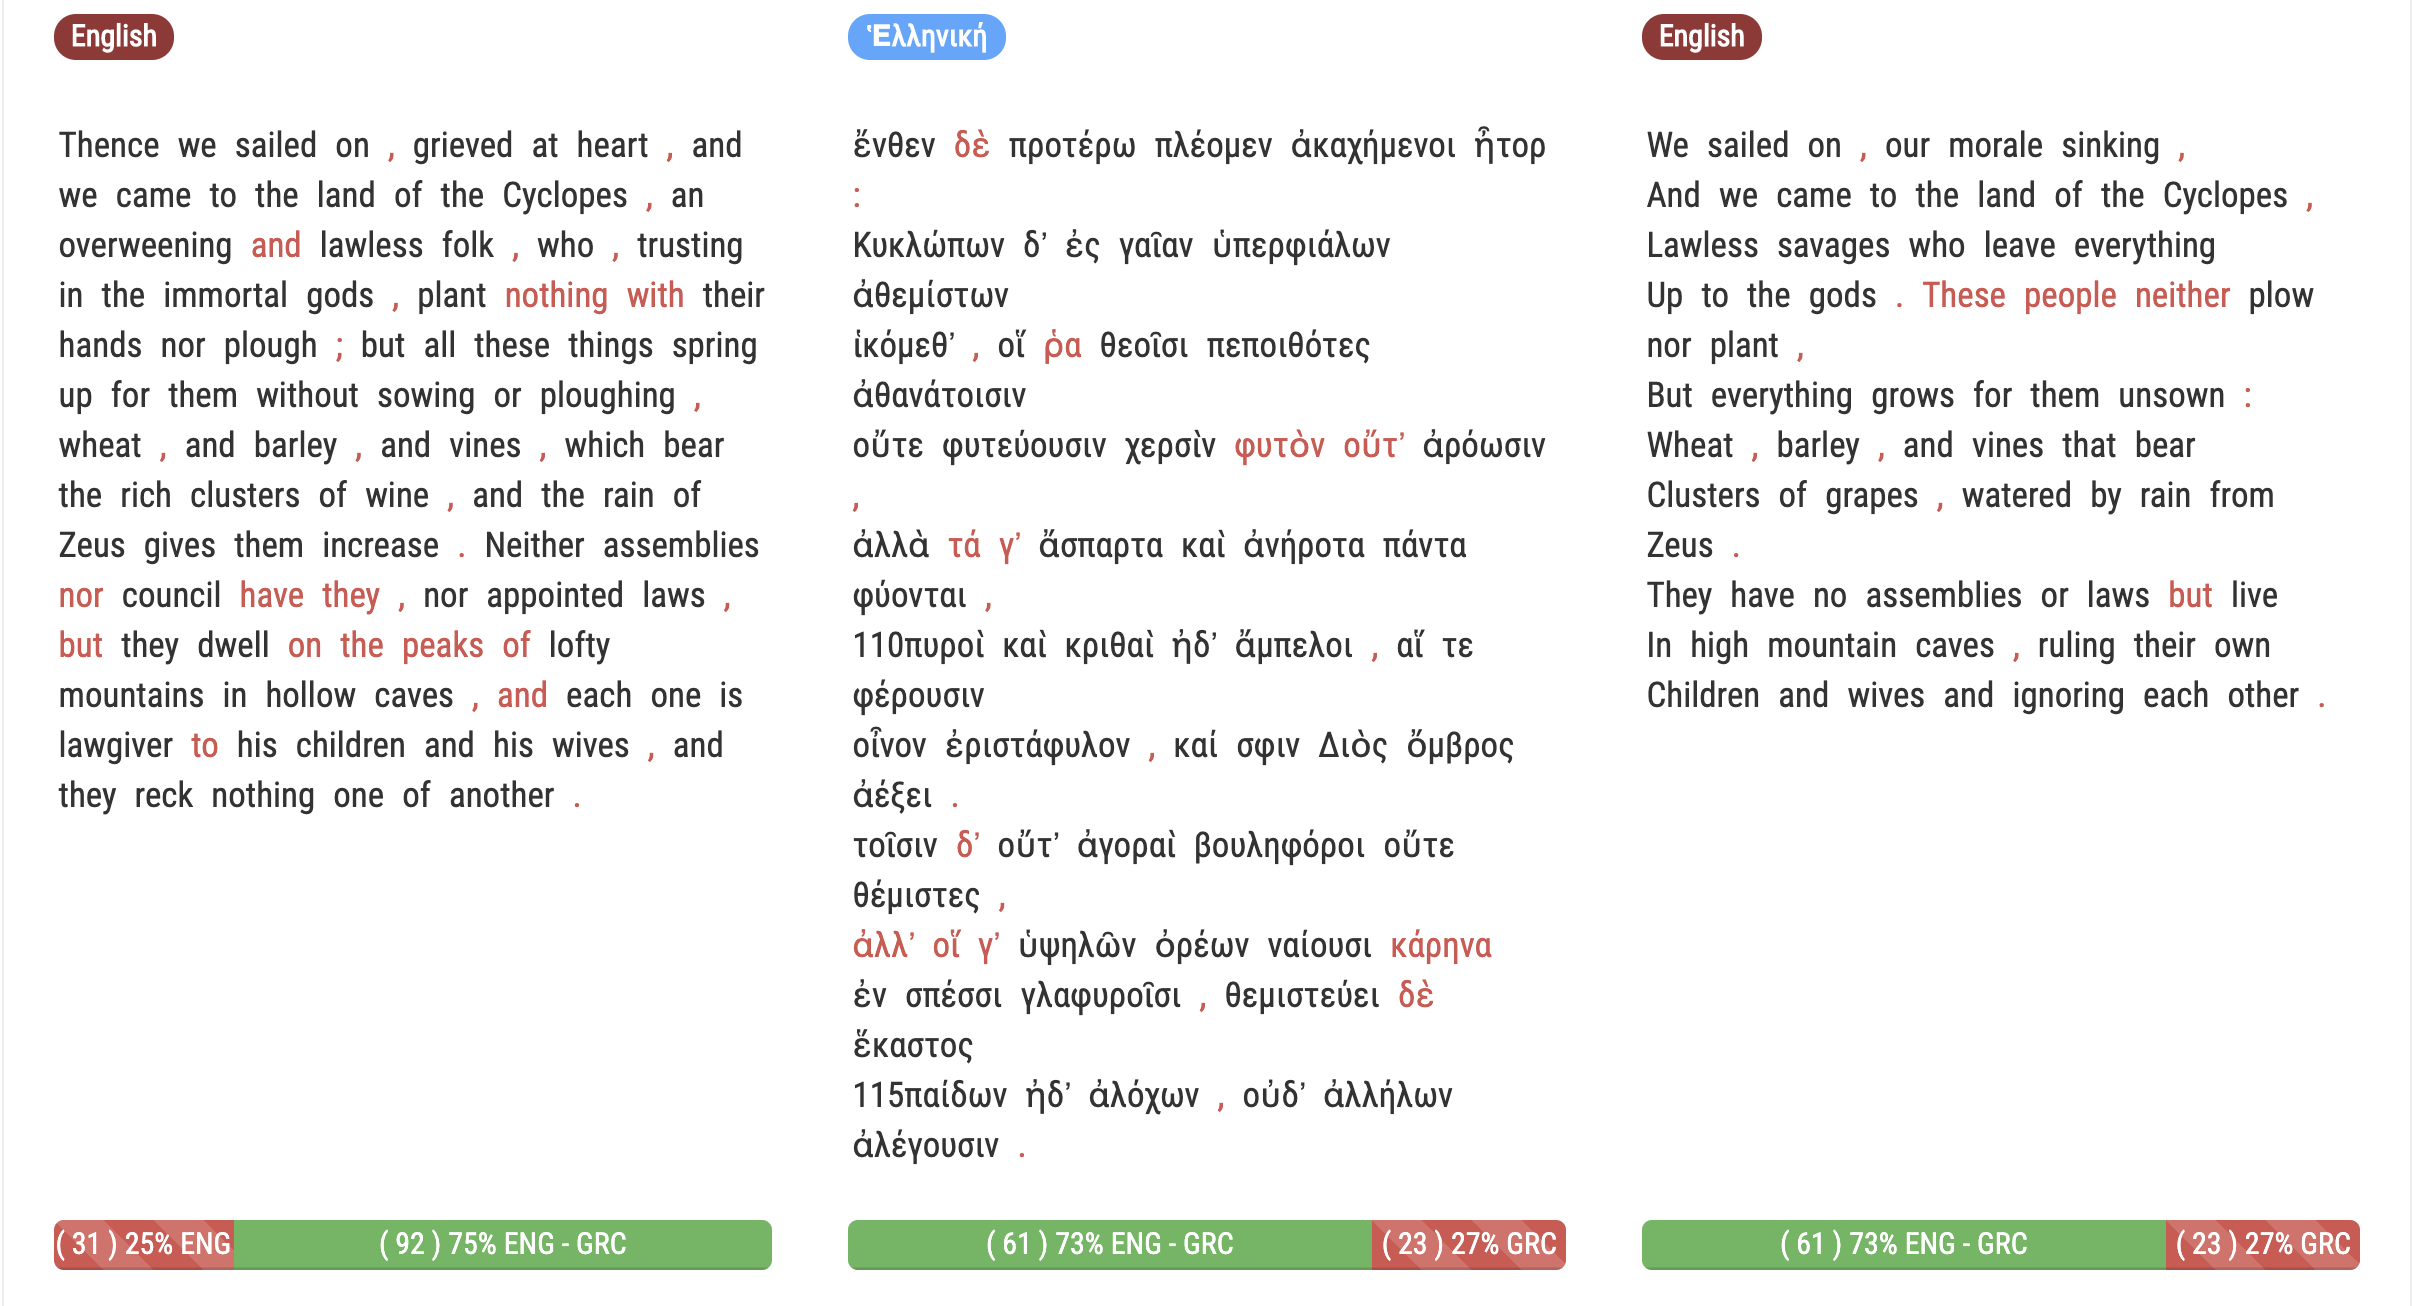 The Ancient Greek text is located at the center, and the two translations at the sides. The translation on the left displays a 75% of aligned pairs, the translation on the right a 73%.